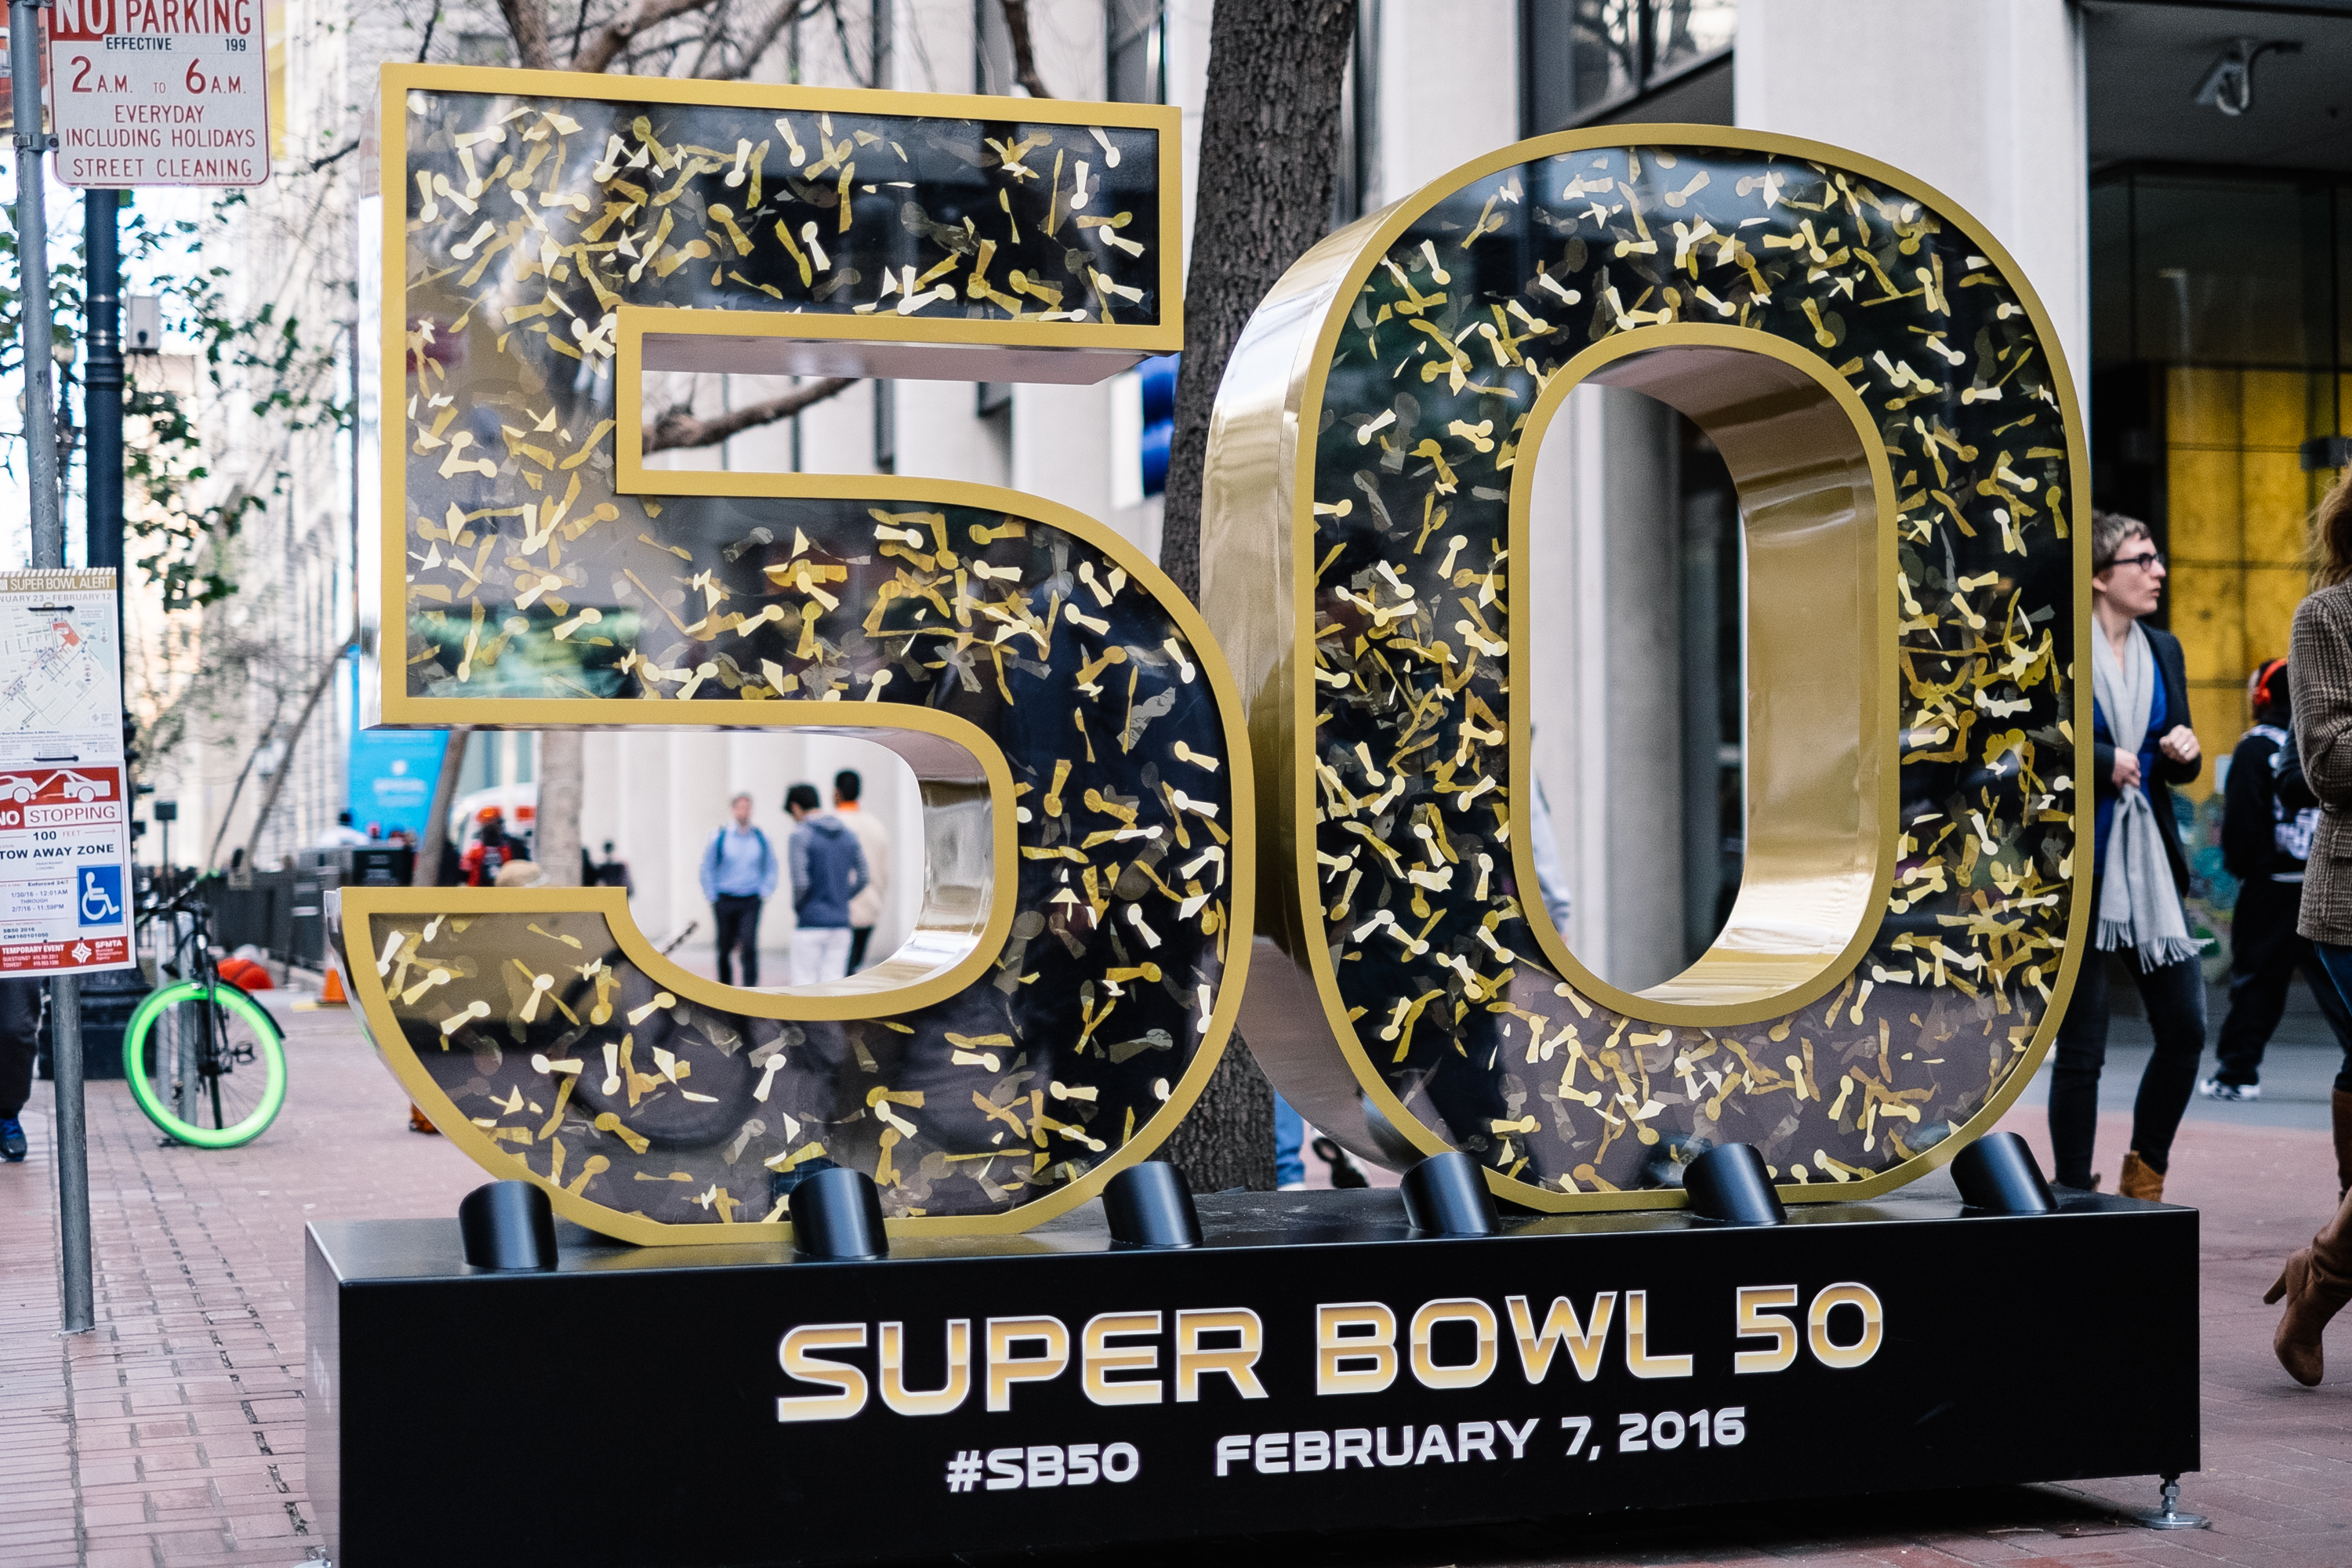 21 Songs To Play At Your Super Bowl 50 Party That Are Total